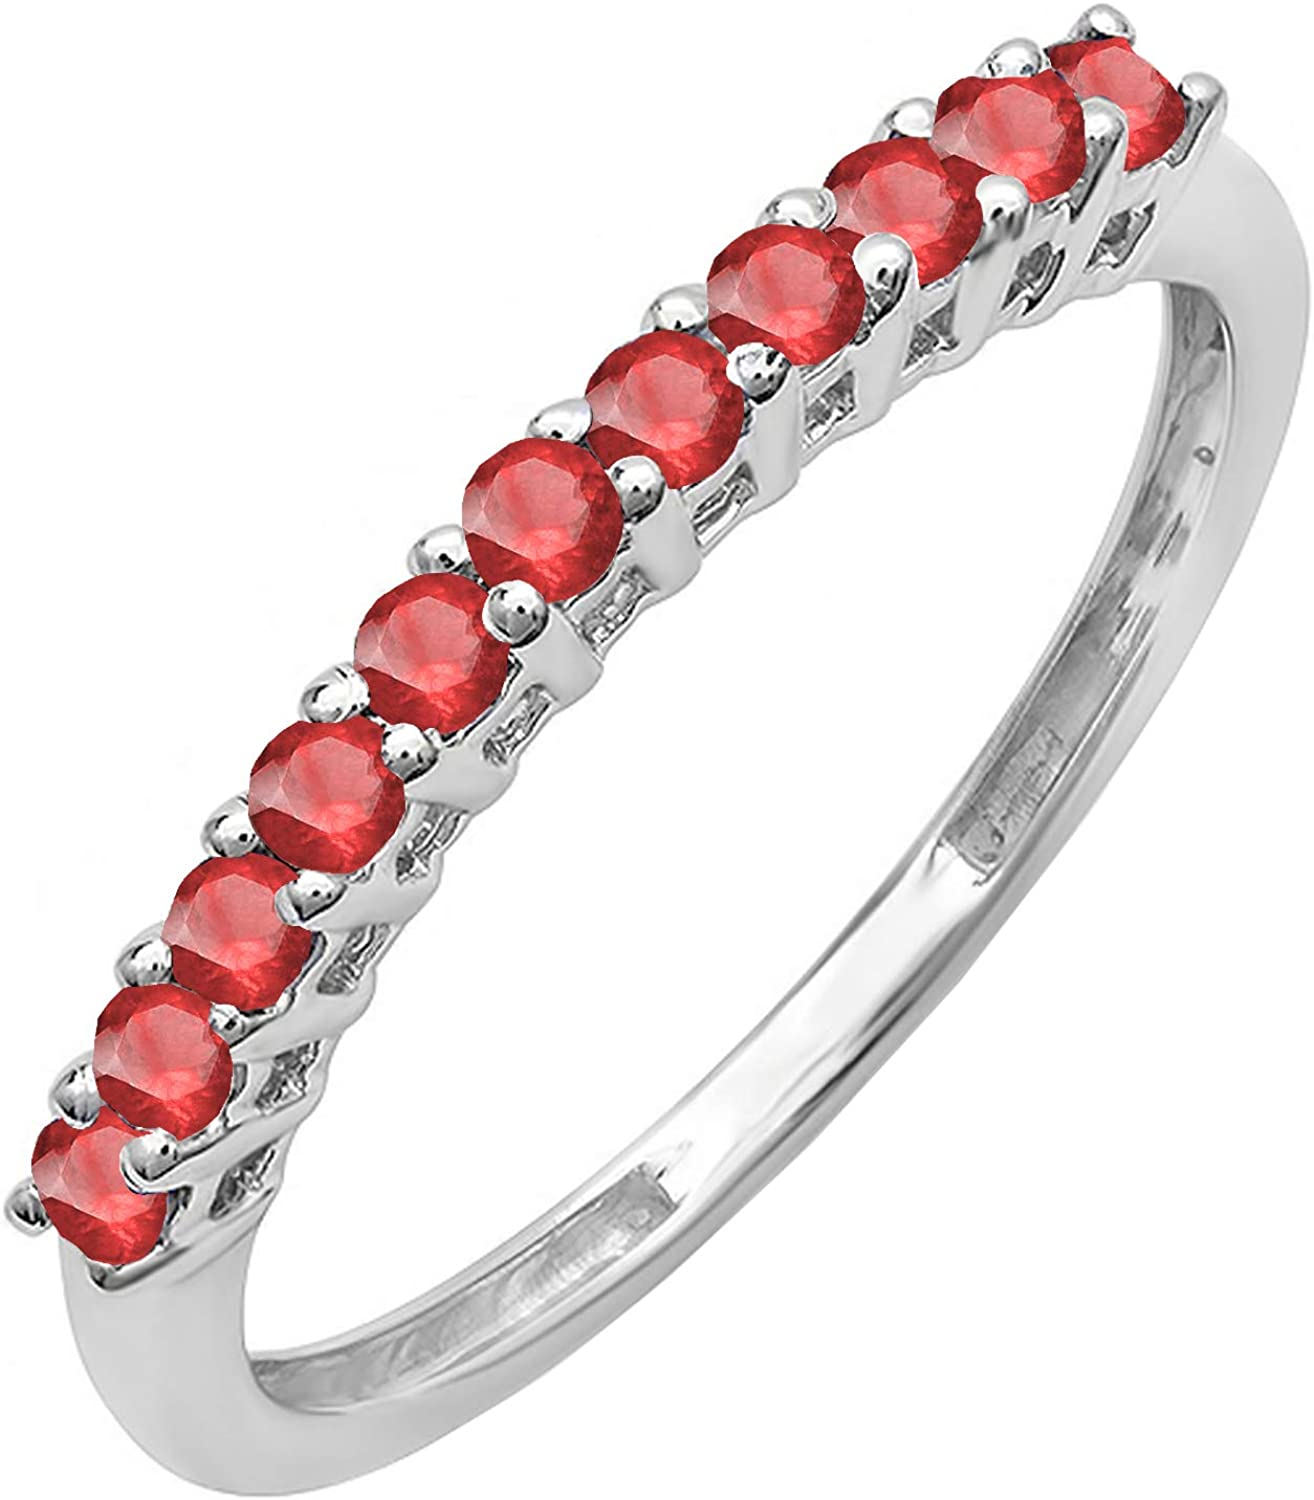 Dazzlingrock Collection 10K Round Anniversary Stackable 5% OFF Direct stock discount Gemstone